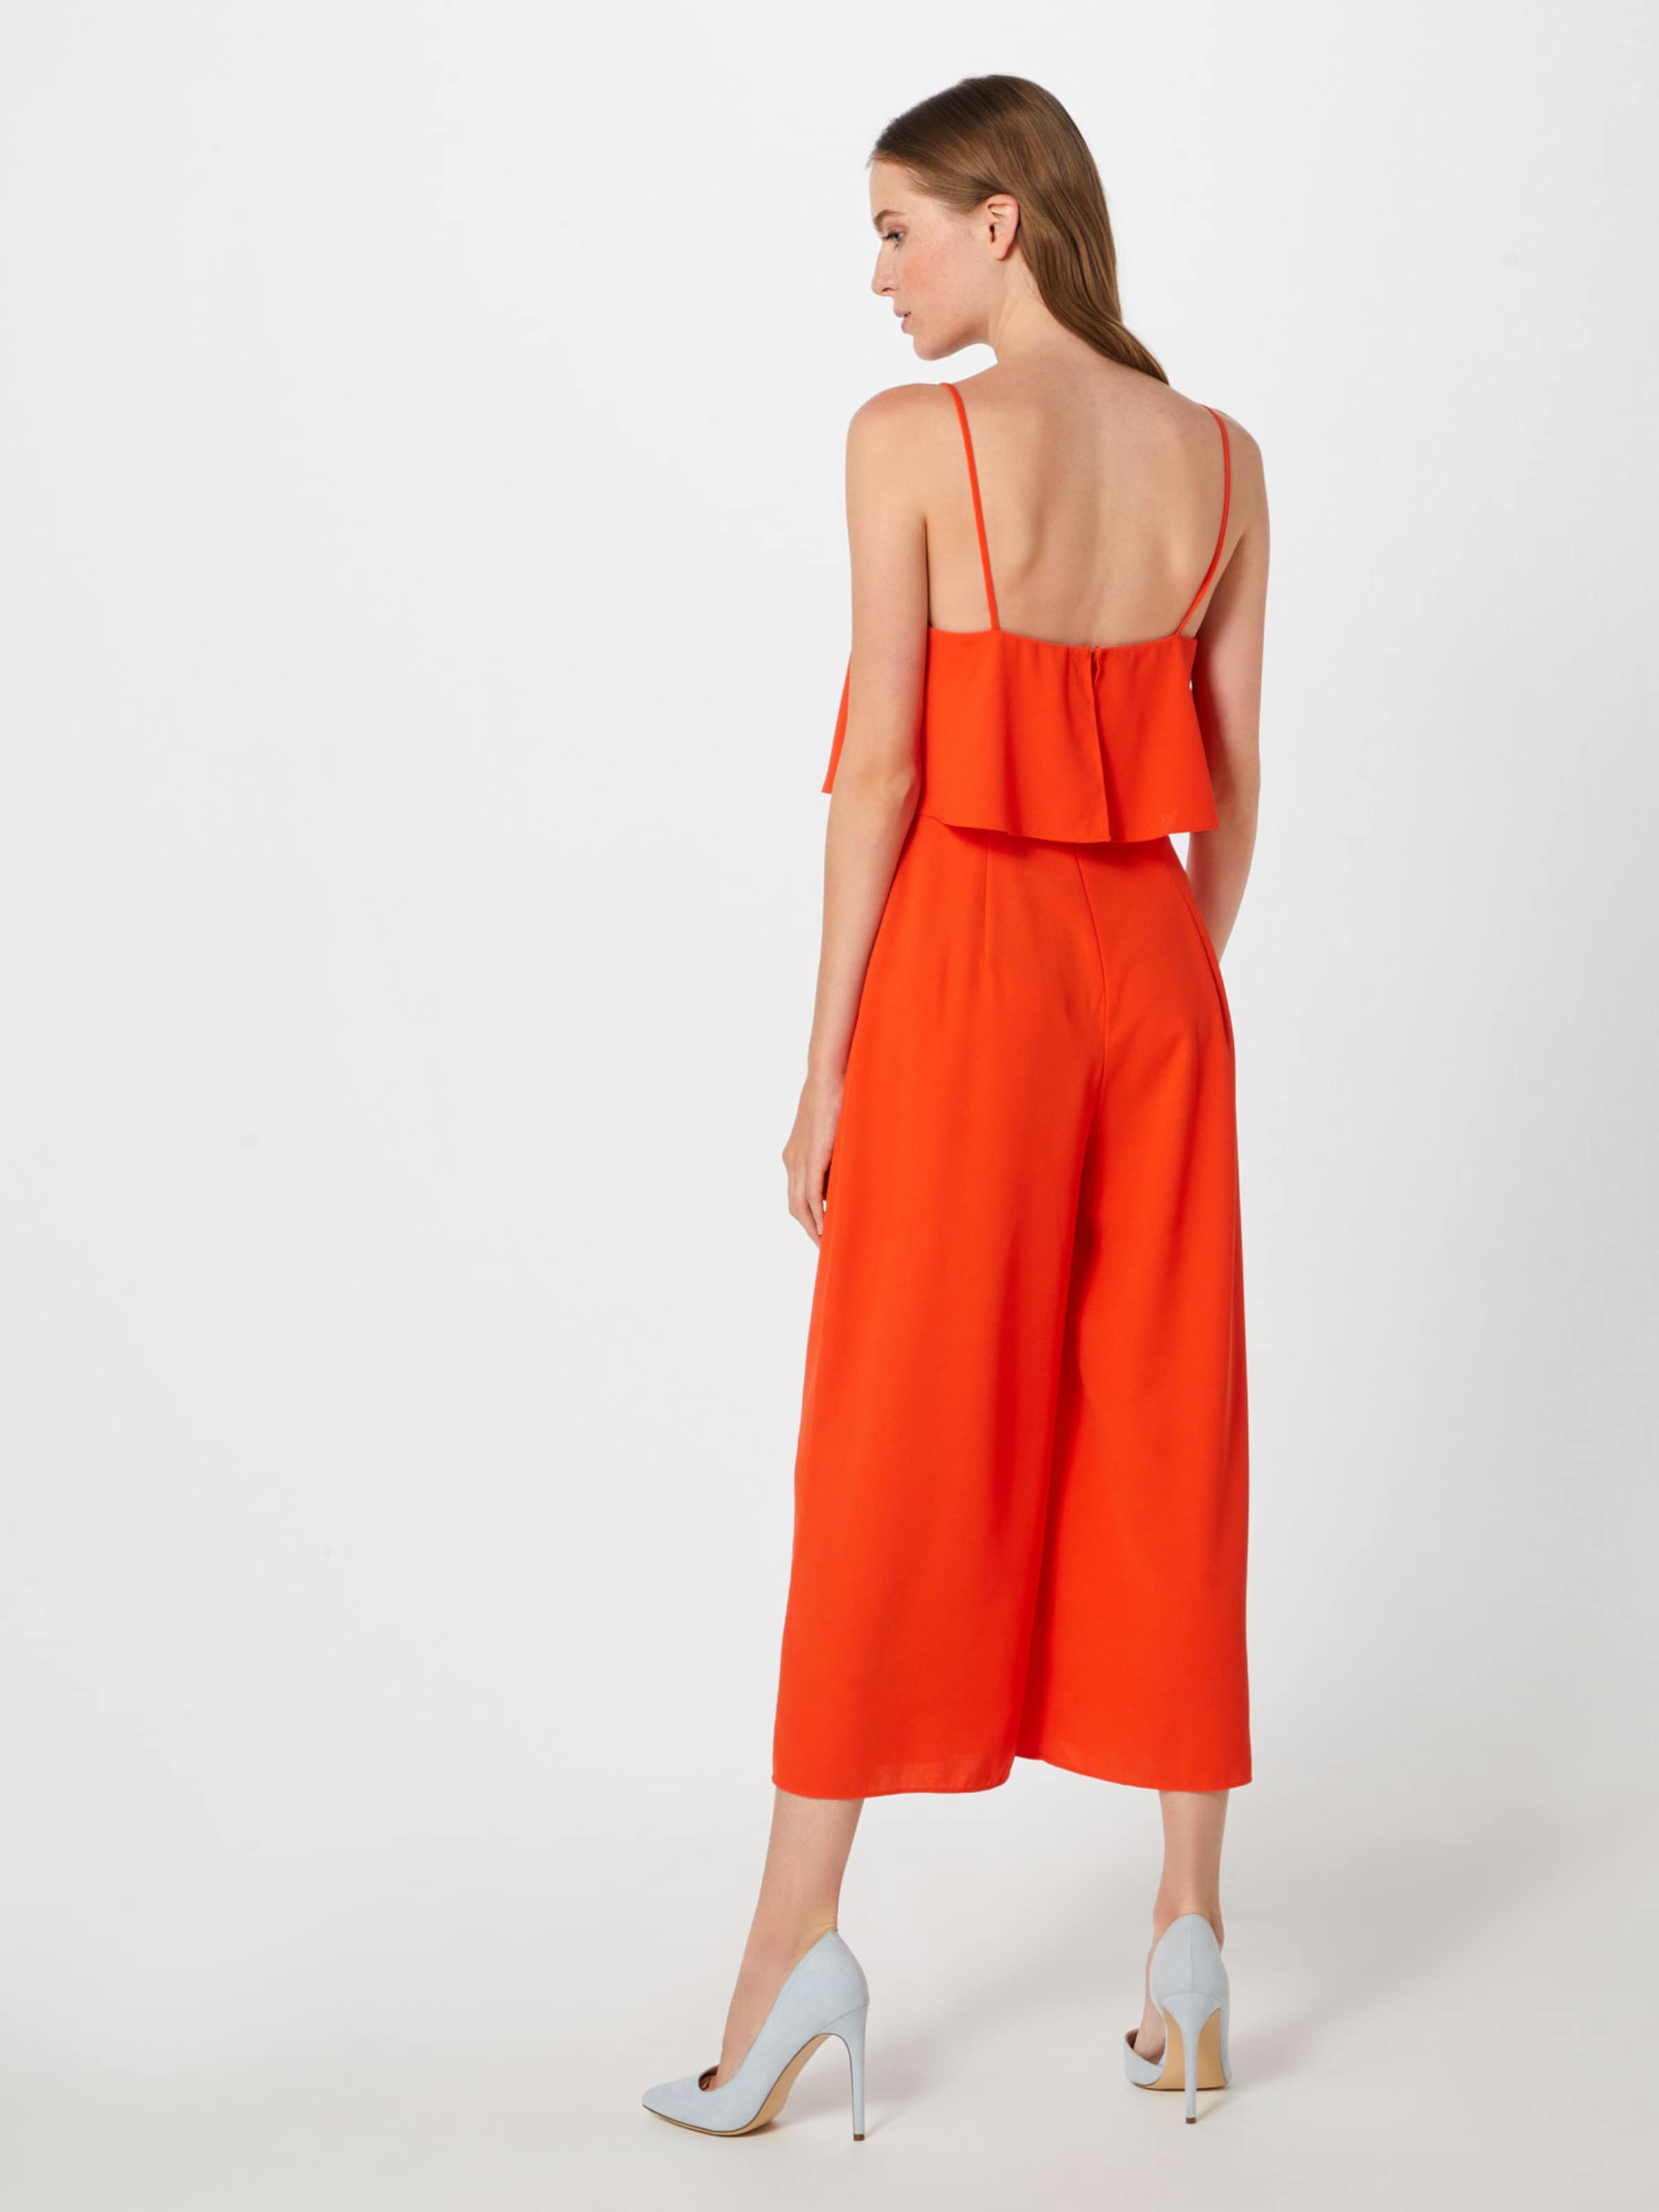 03 Jumpsuit Strappy Ww Go New In '2 Orangerot P108' Look 1KTclJF